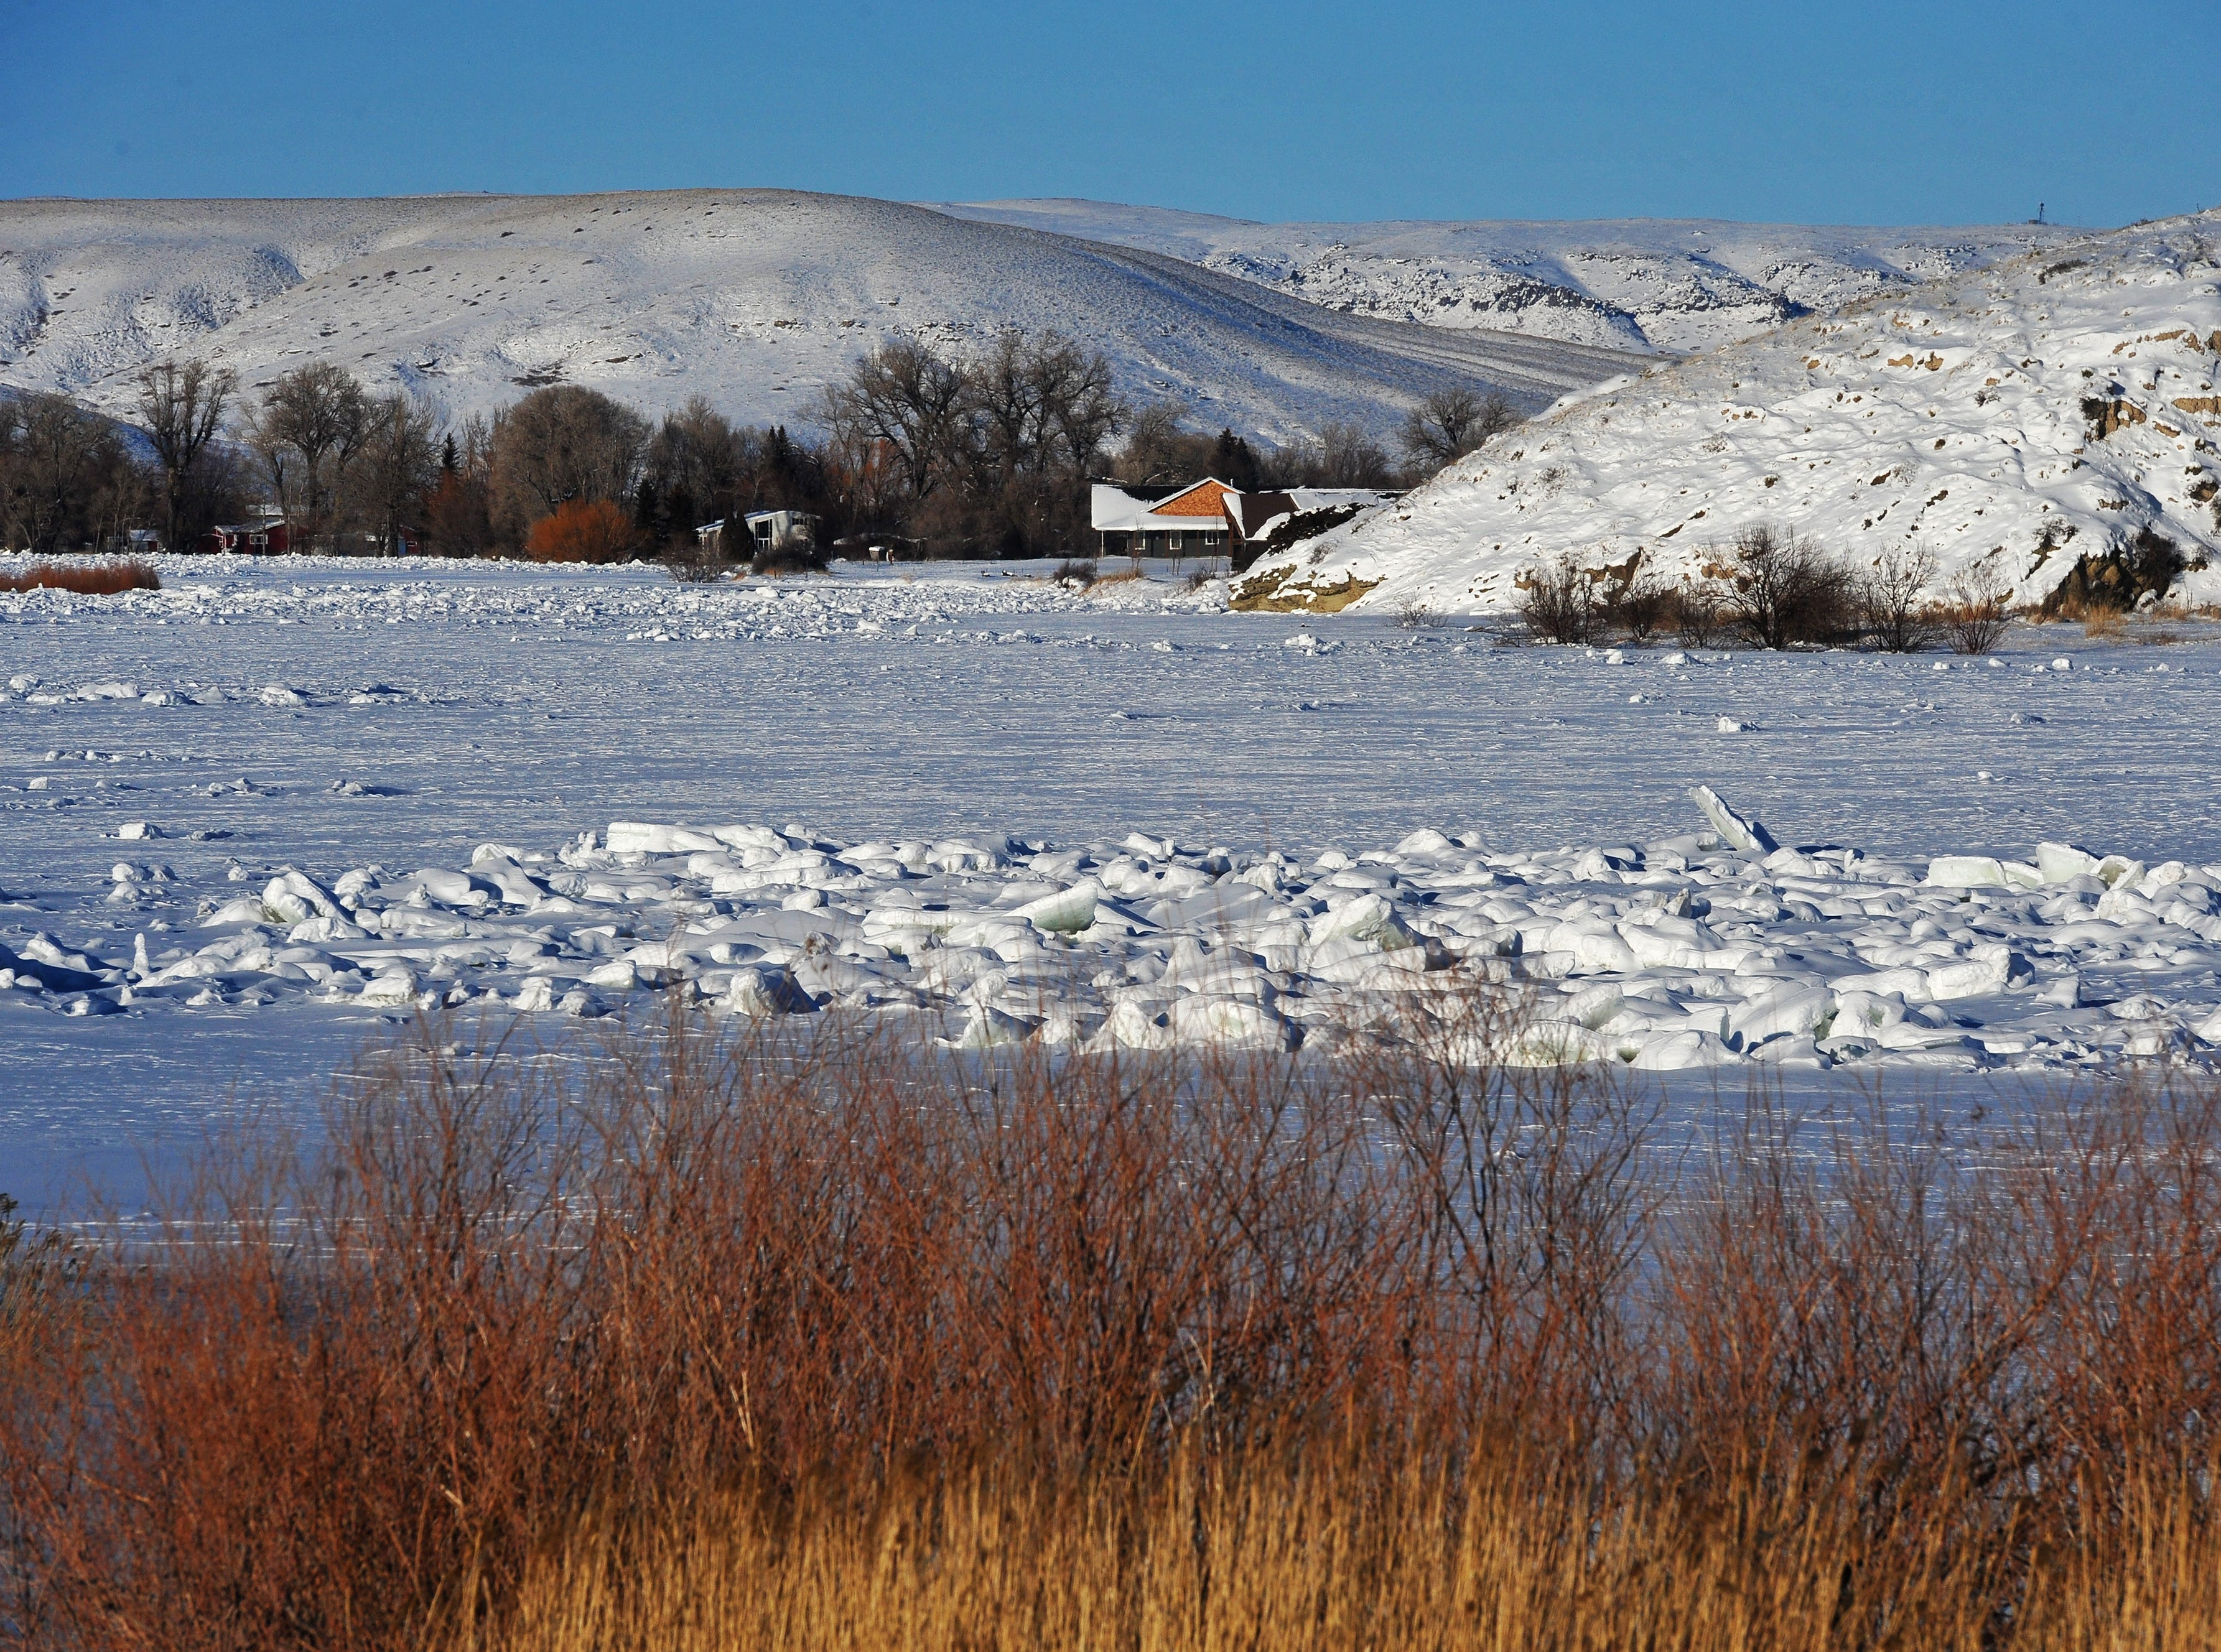 Ice and snow cover completely hide the Missouri River at the Pelican Point fishing access site, Tuesday, February 19, 2019.  Ice jams along several miles of the Missouri River has caused minor flooding near Cascade.